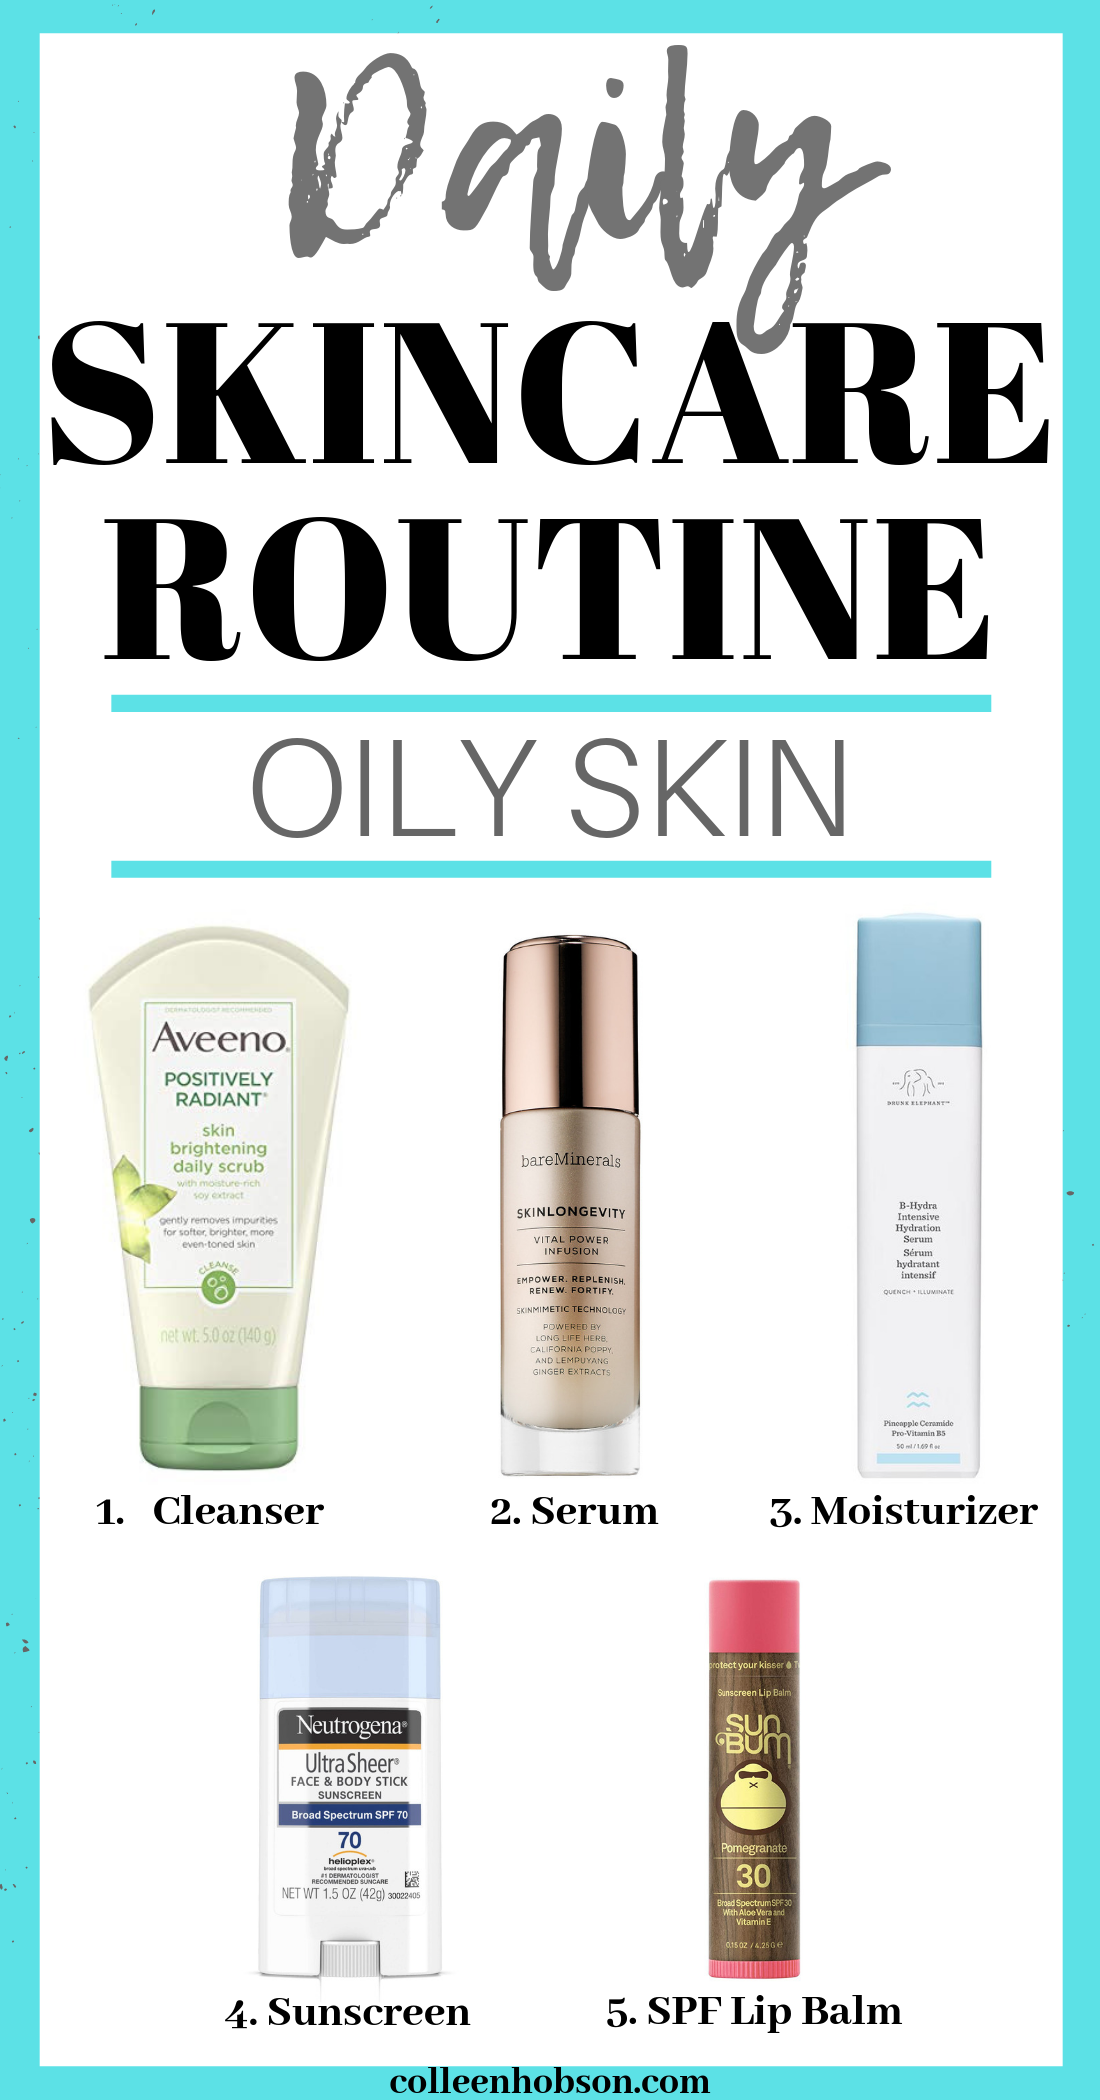 Daily Skincare Routine For Oily Skin Oily skin care